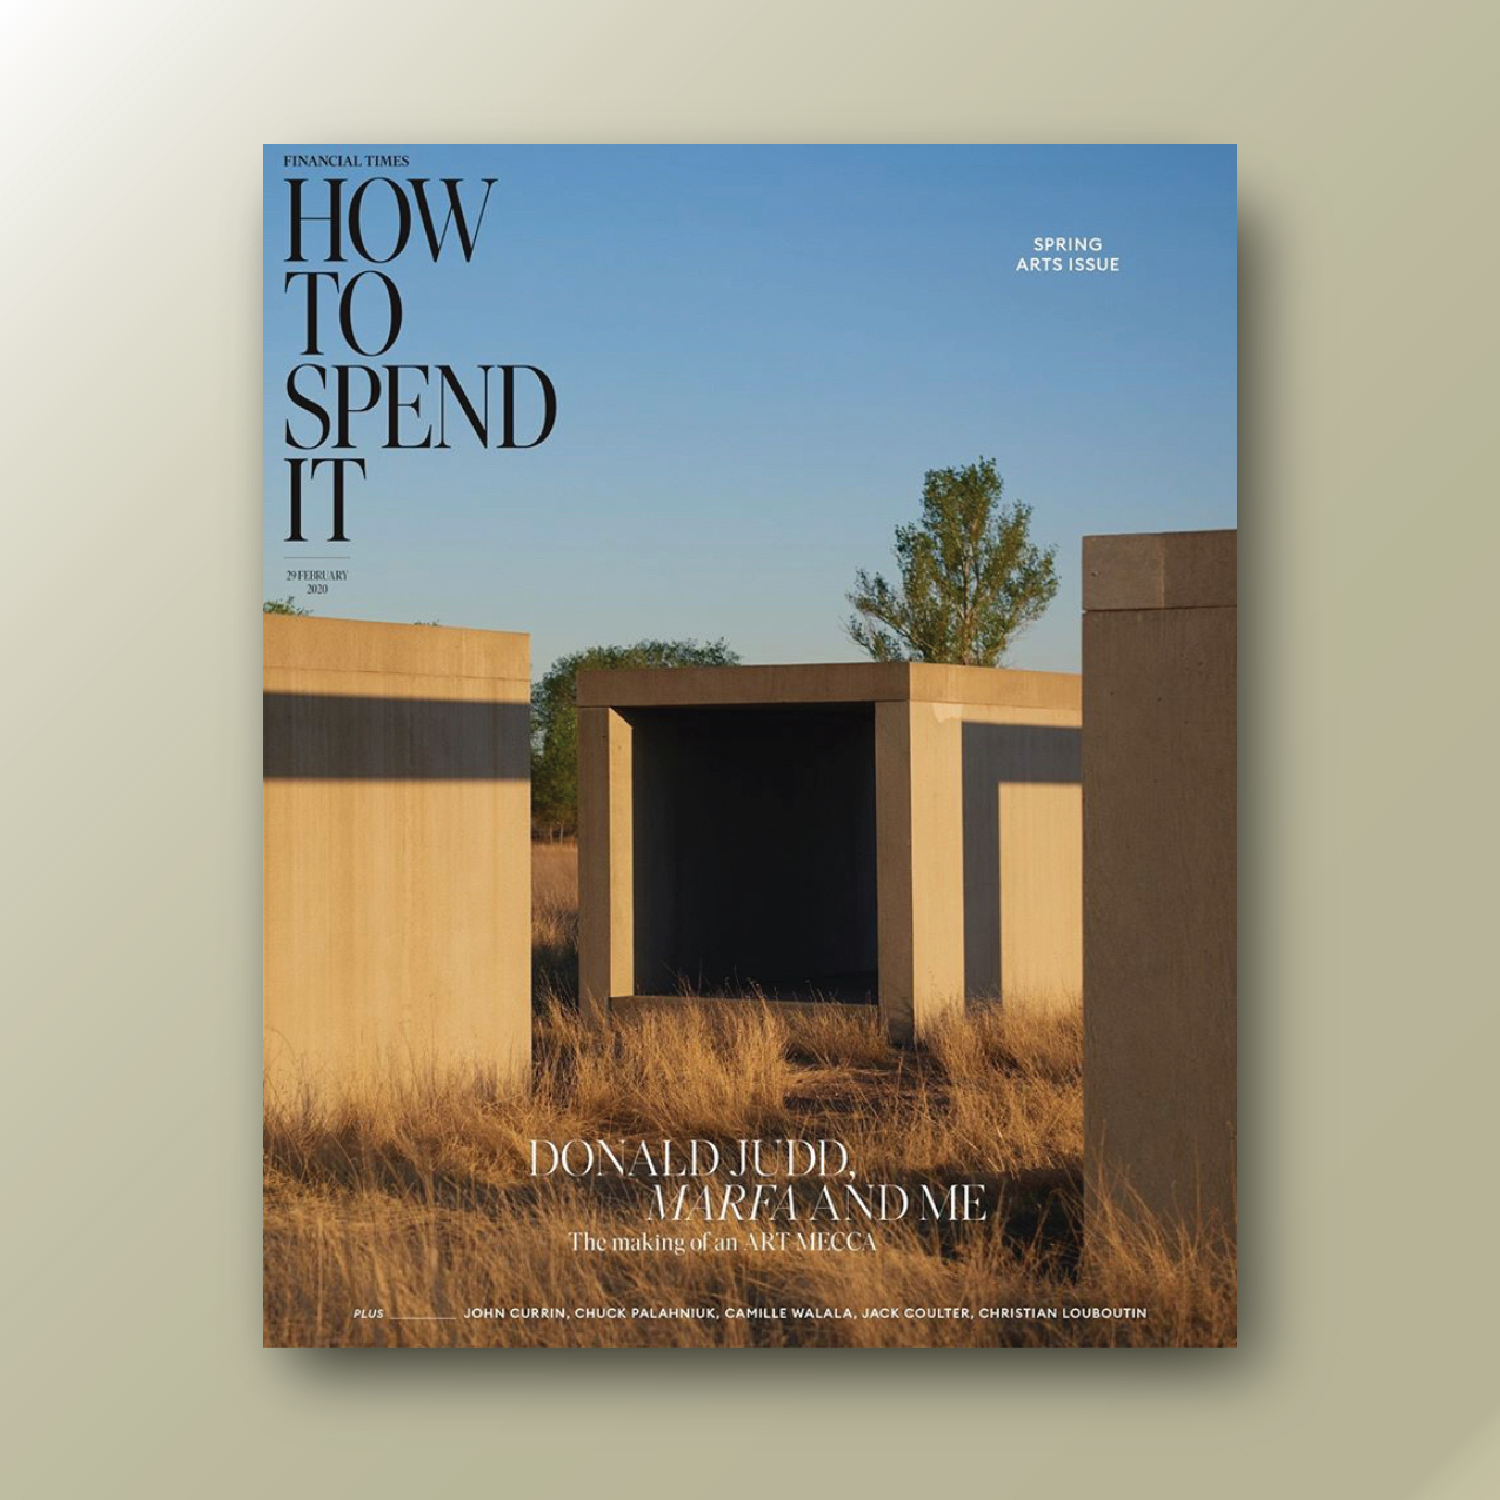 How To Spend It, The Financial Times, Marfa Texas, Donald Judd, Rima Suqi